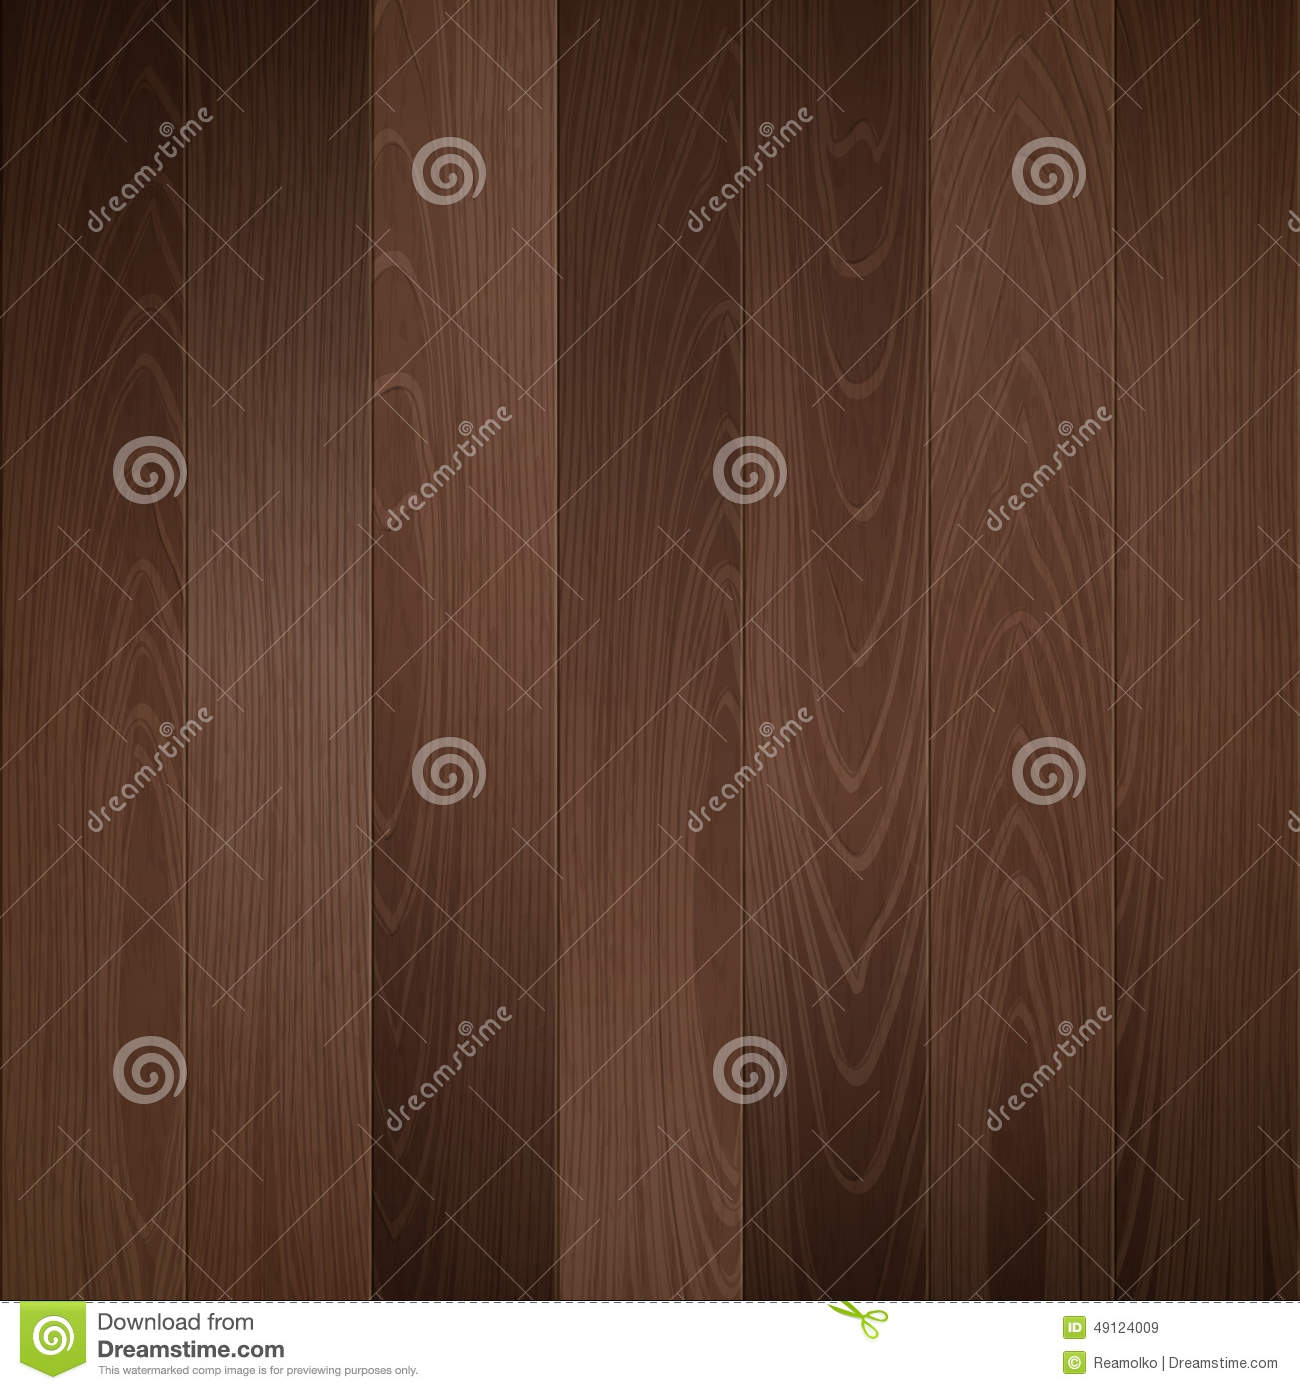 Dark Wood Texture Vector Background. Stock Vector - Image ...